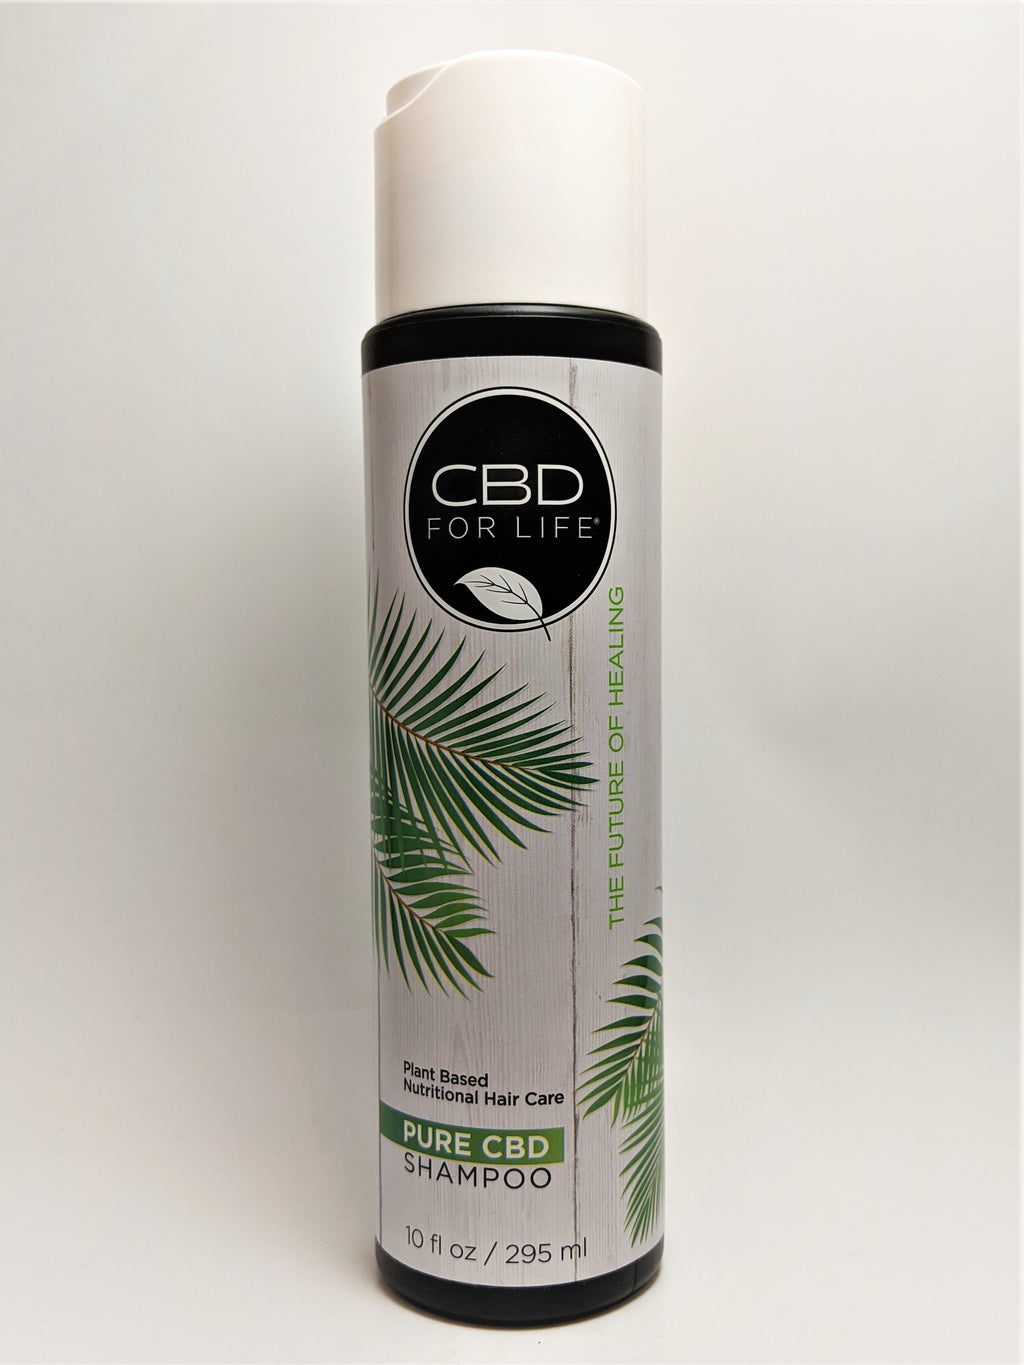 CBD For Life Shampoo - CBD Central